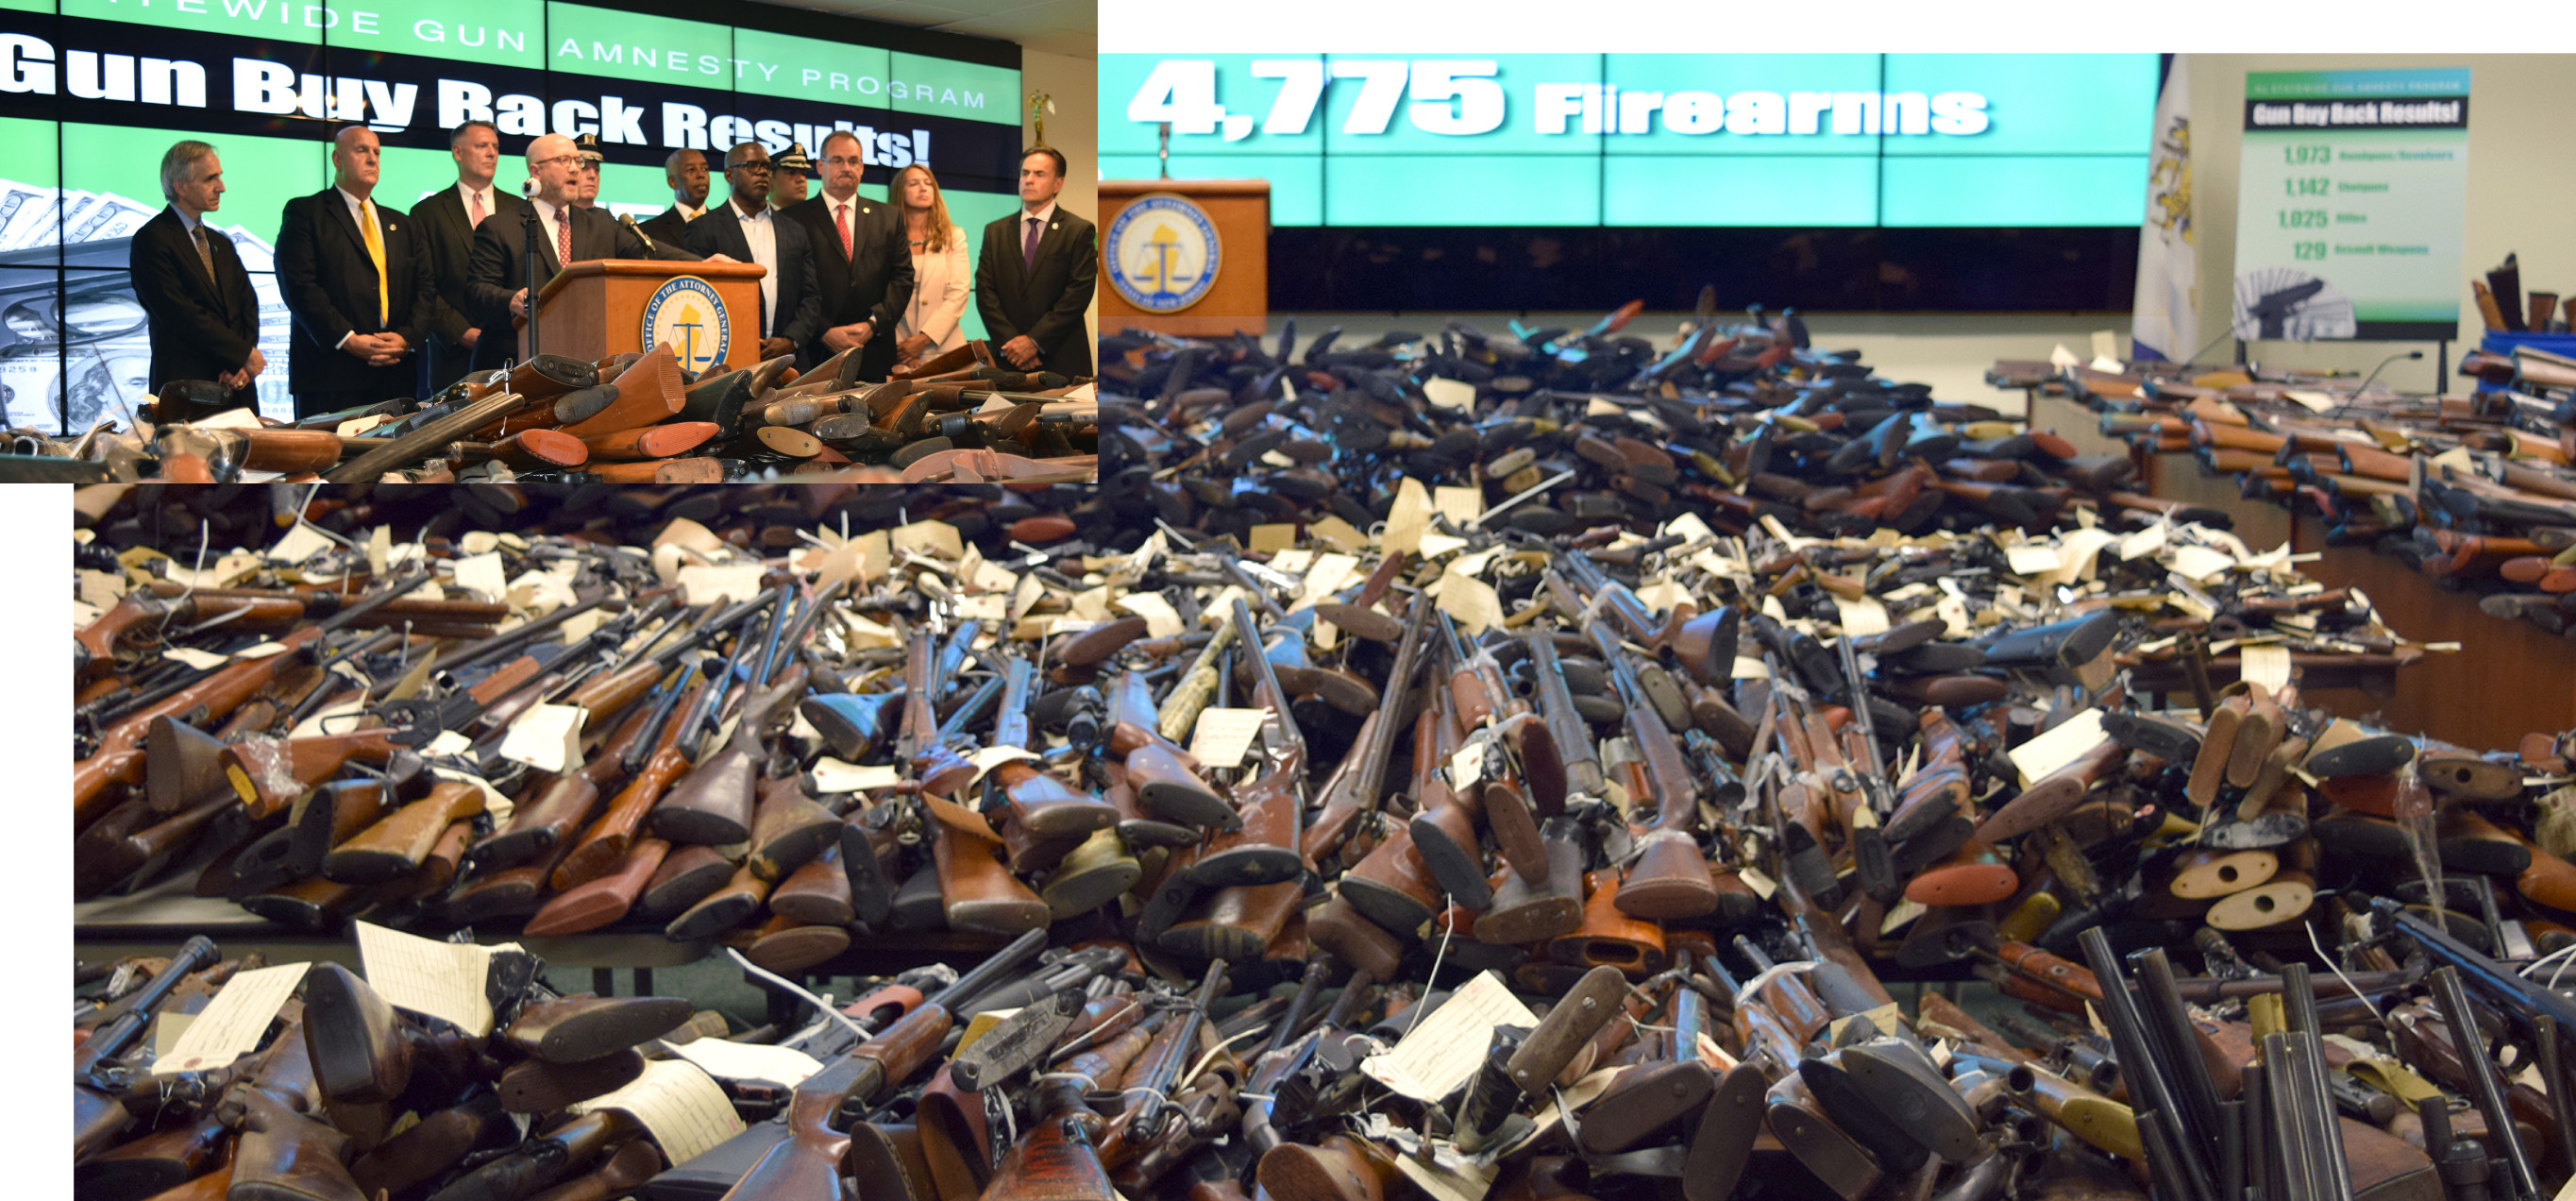 4,775 Guns Collected During the Most Successful Gun Buyback